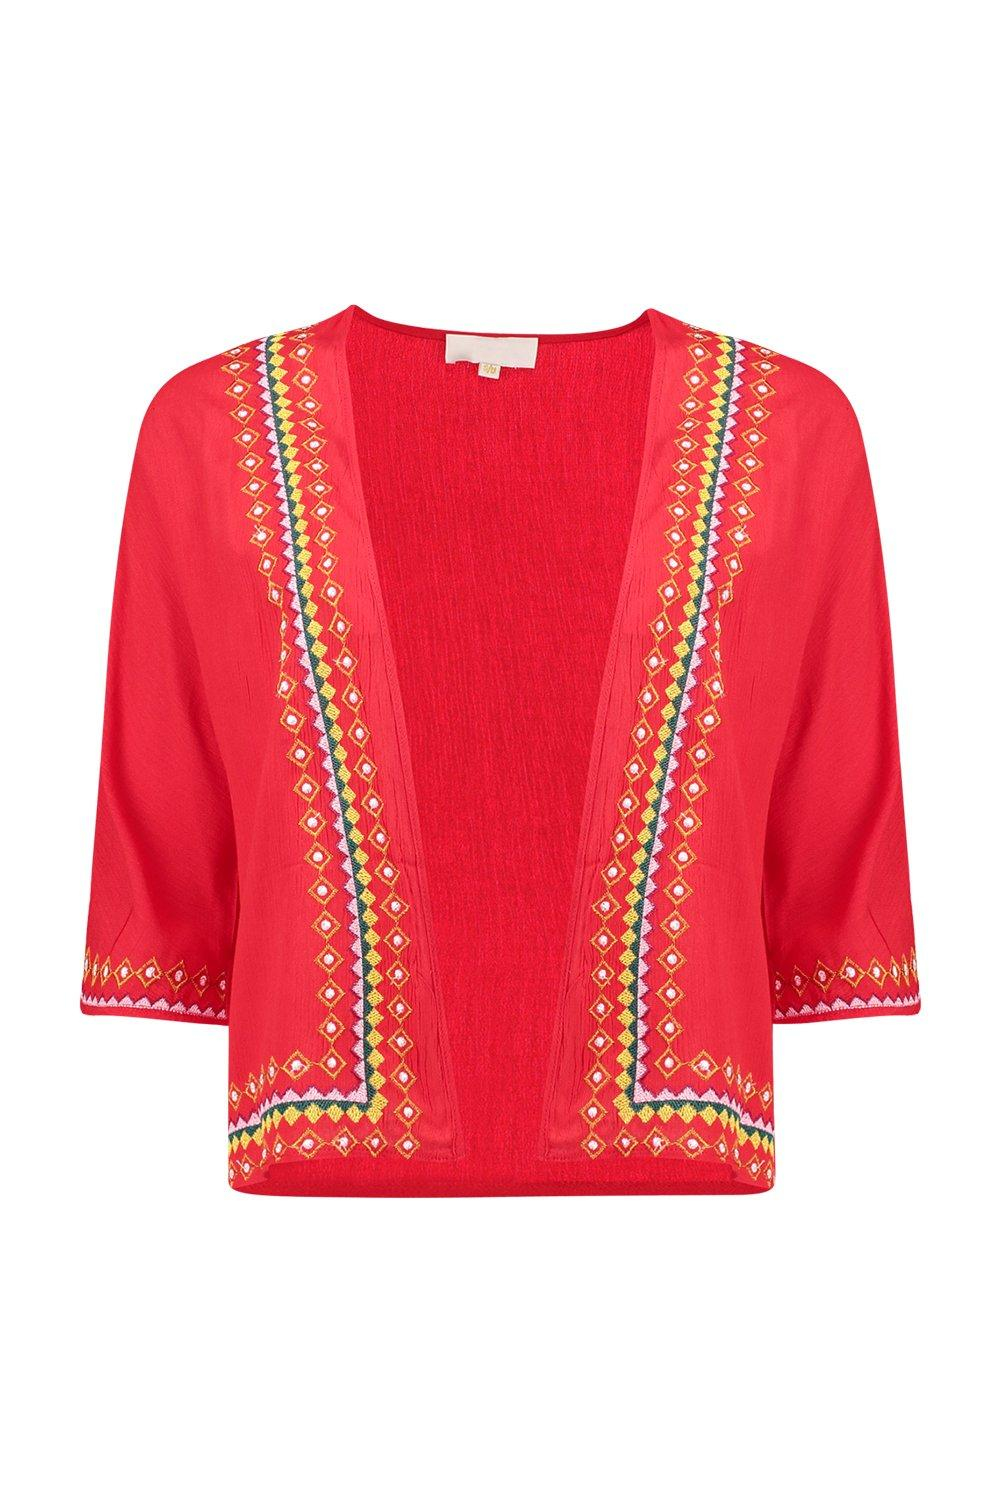 Boohoo maya embroidered trophy jacket in red lyst